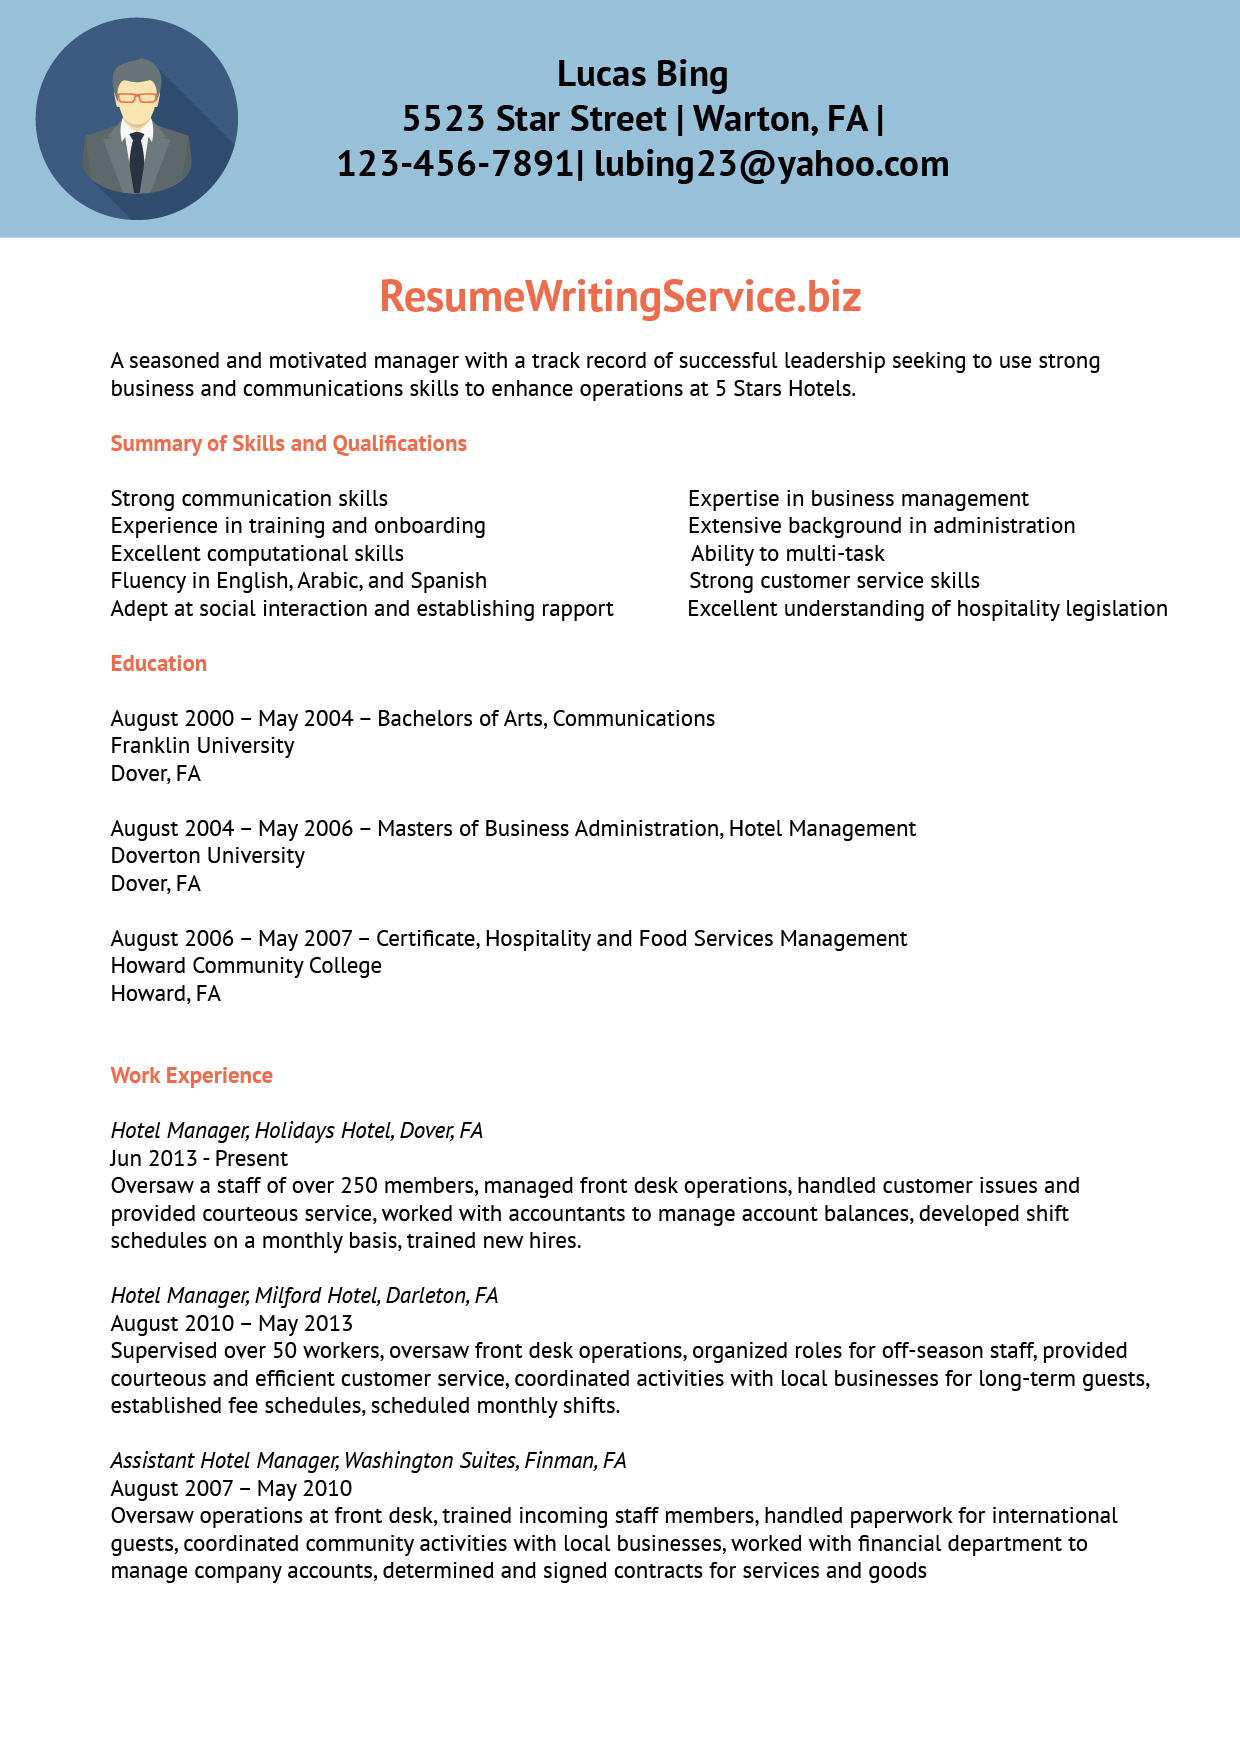 oversaw in a resume